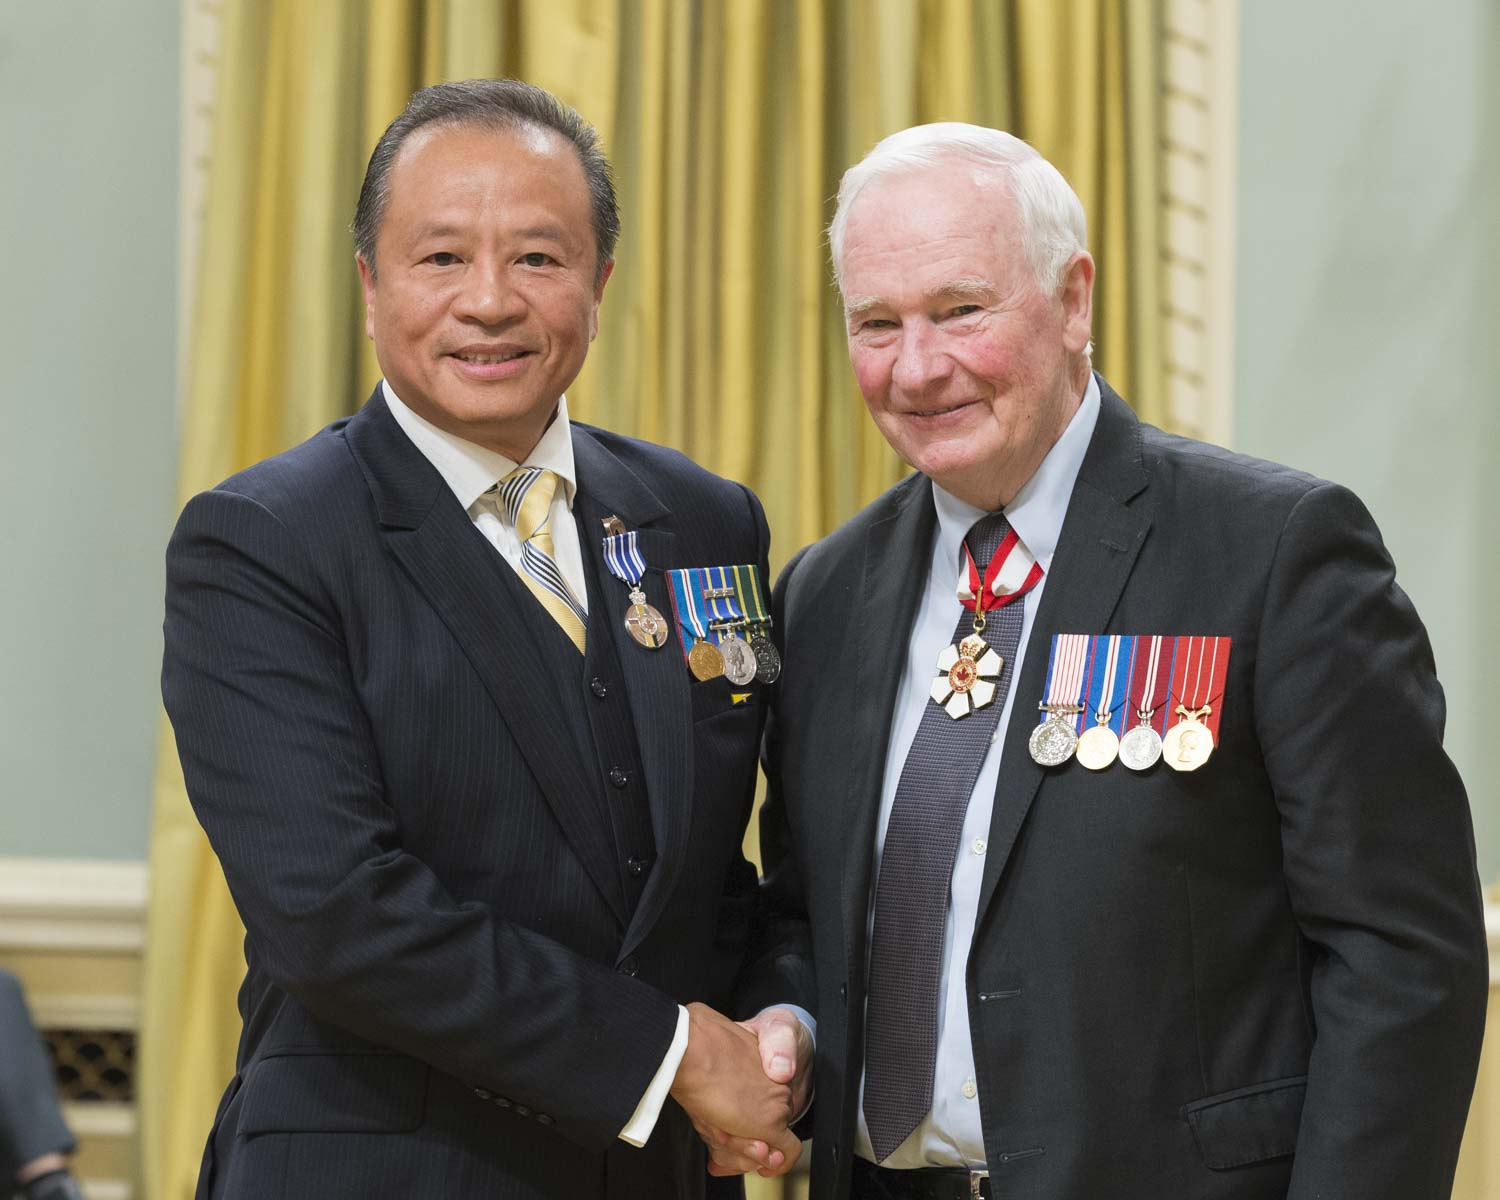 His Excellency presented the Meritorious Service Medal to Constable Rico Wong. In 2000, constables Ashford, Ng and Wong, Corporal Gyorfi, Sergeant MacDonald, and civilian member Ma represented the RCMP within an international law enforcement team tracking heroin traffickers in Fiji. Their successful covert operation led to the capture of seven traffickers and the seizure of 350 kilograms of heroin destined for Canadian markets. Equally impressive, these members undertook their work during a political coup and in a hostile environment at great peril to themselves.